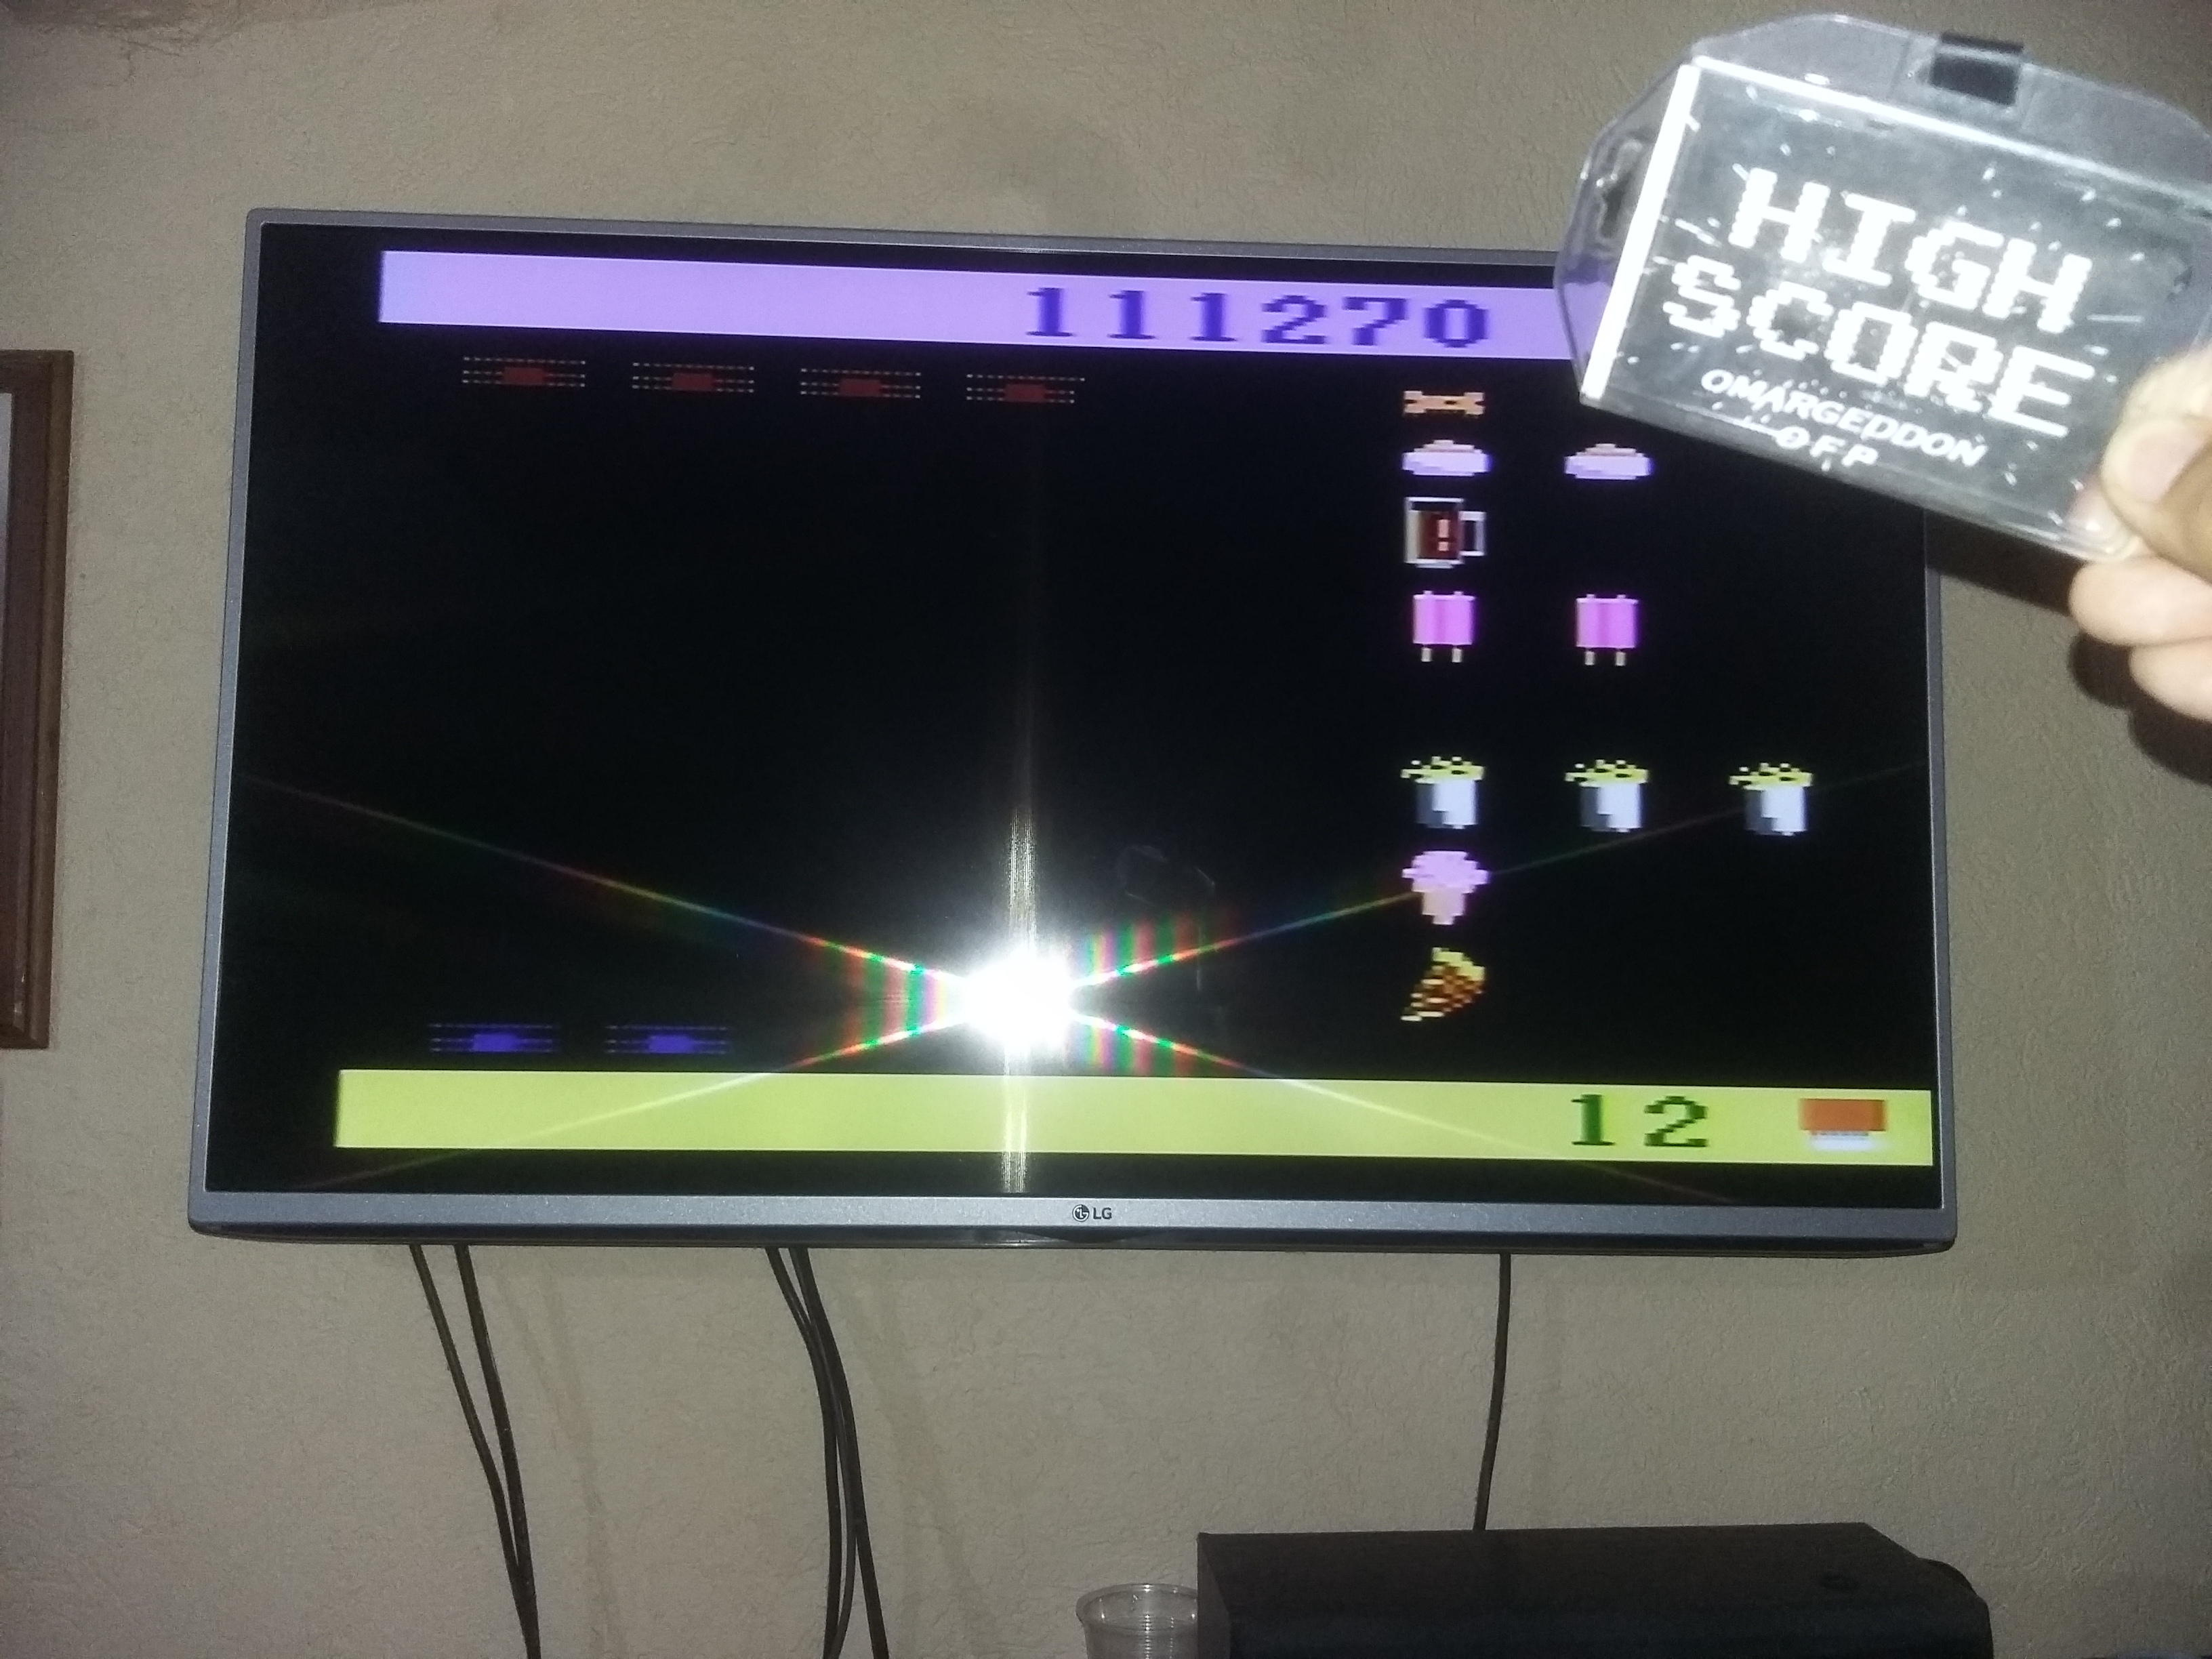 omargeddon: Snoopy and the Red Baron (Atari 2600 Novice/B) 111,270 points on 2017-05-28 08:56:35